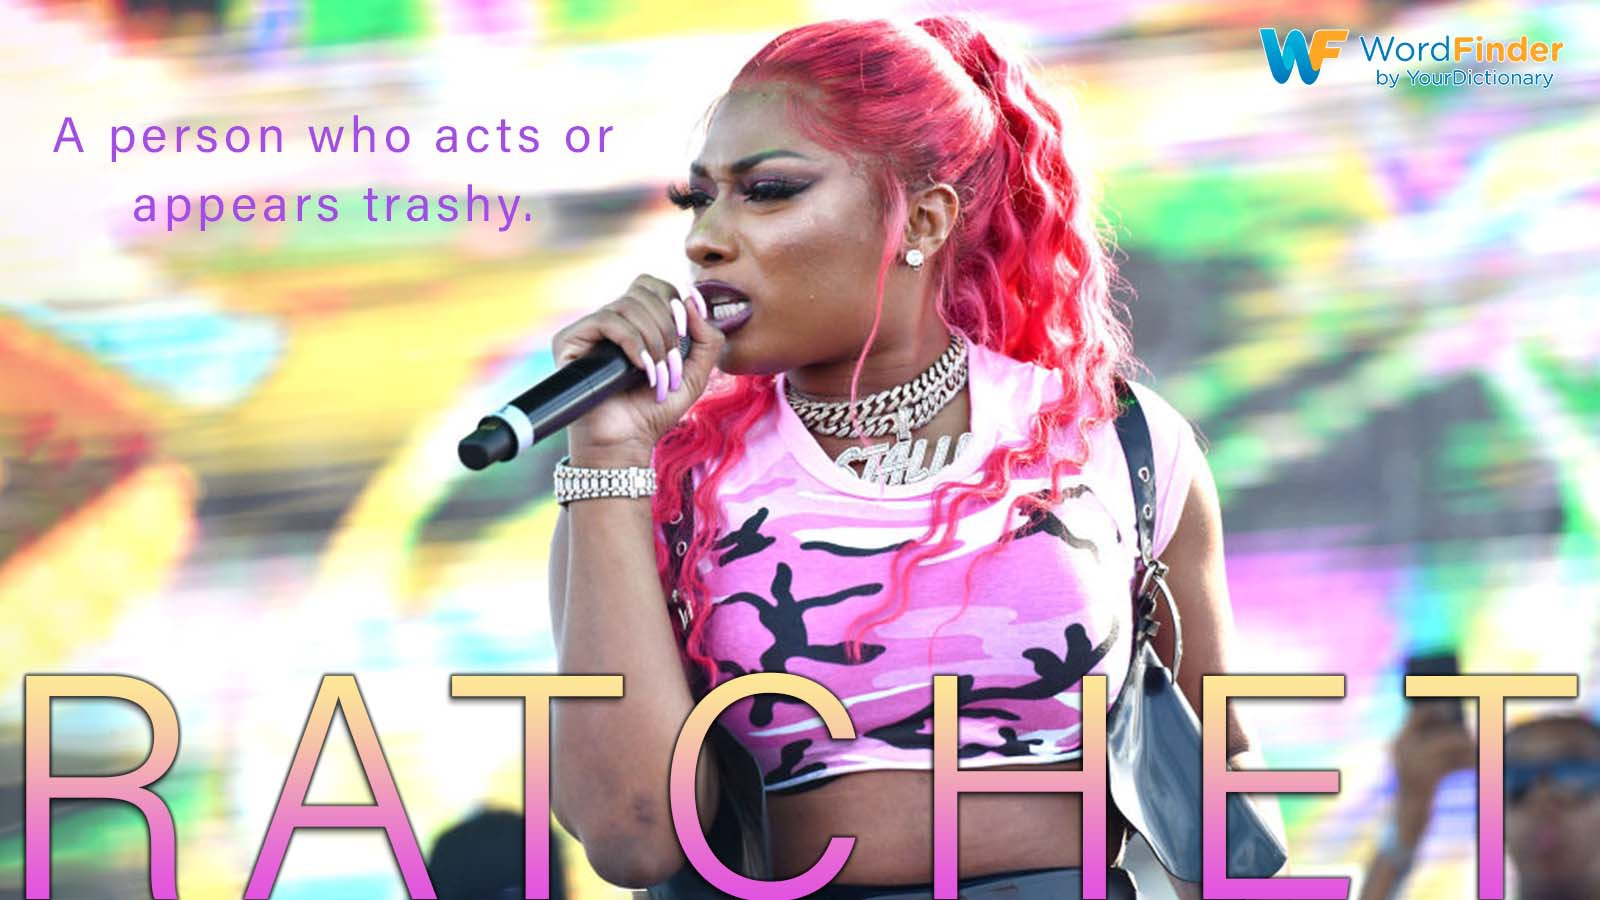 ratchet definition with Megan Thee Stallion